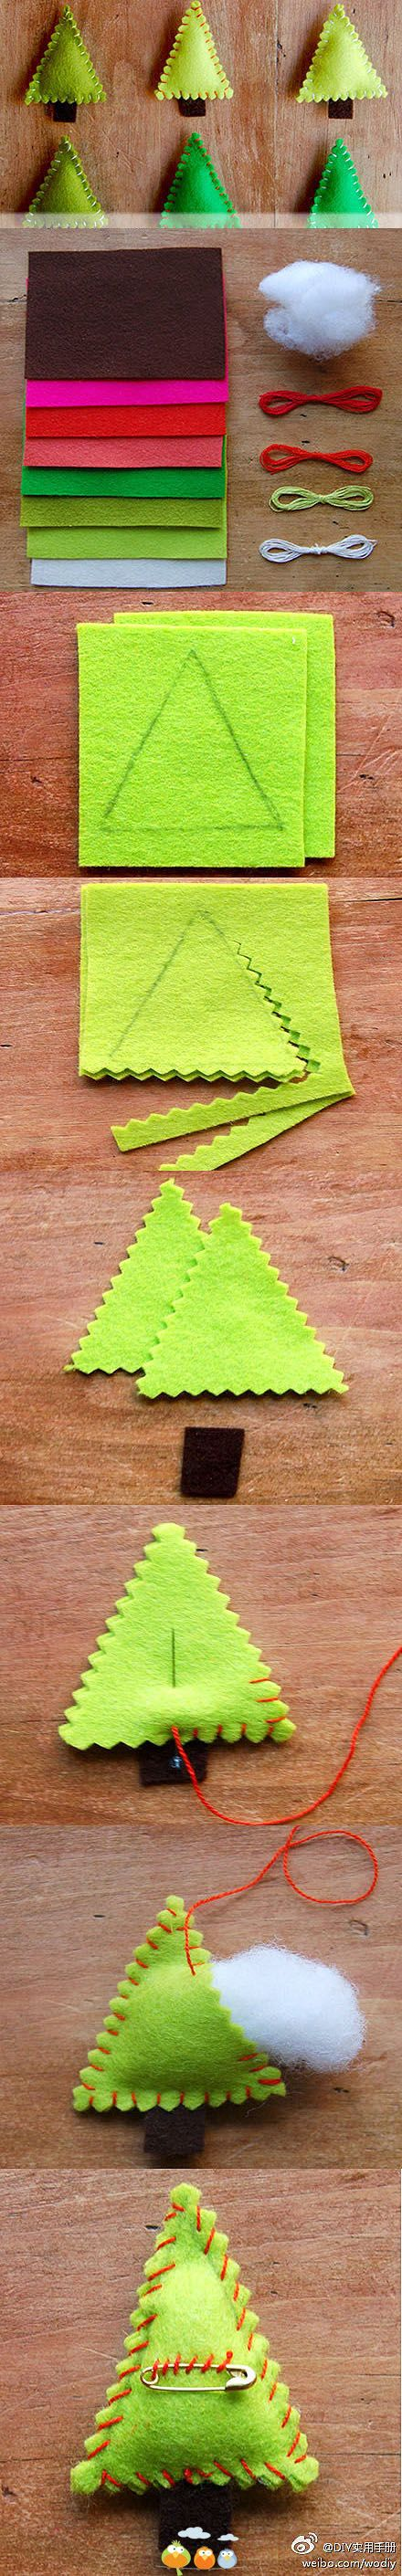 ≡ use edging scissors for zig zag effect for Felt Christmas Tree ornament